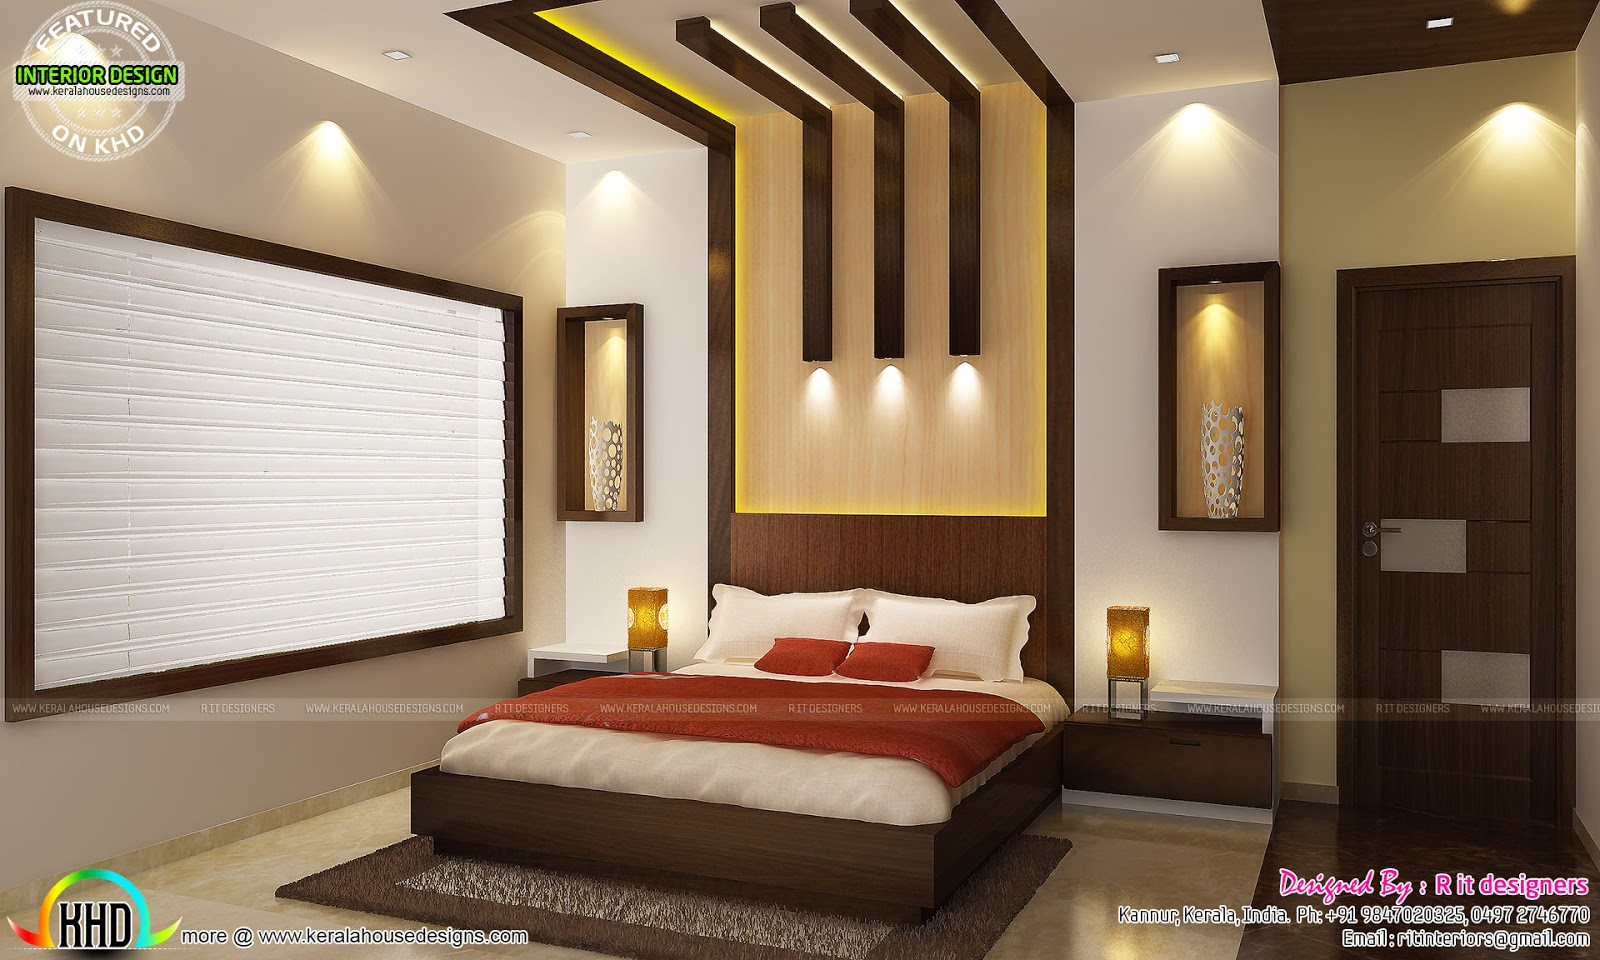 Kitchen living bedroom dining interior decor kerala for Latest room design